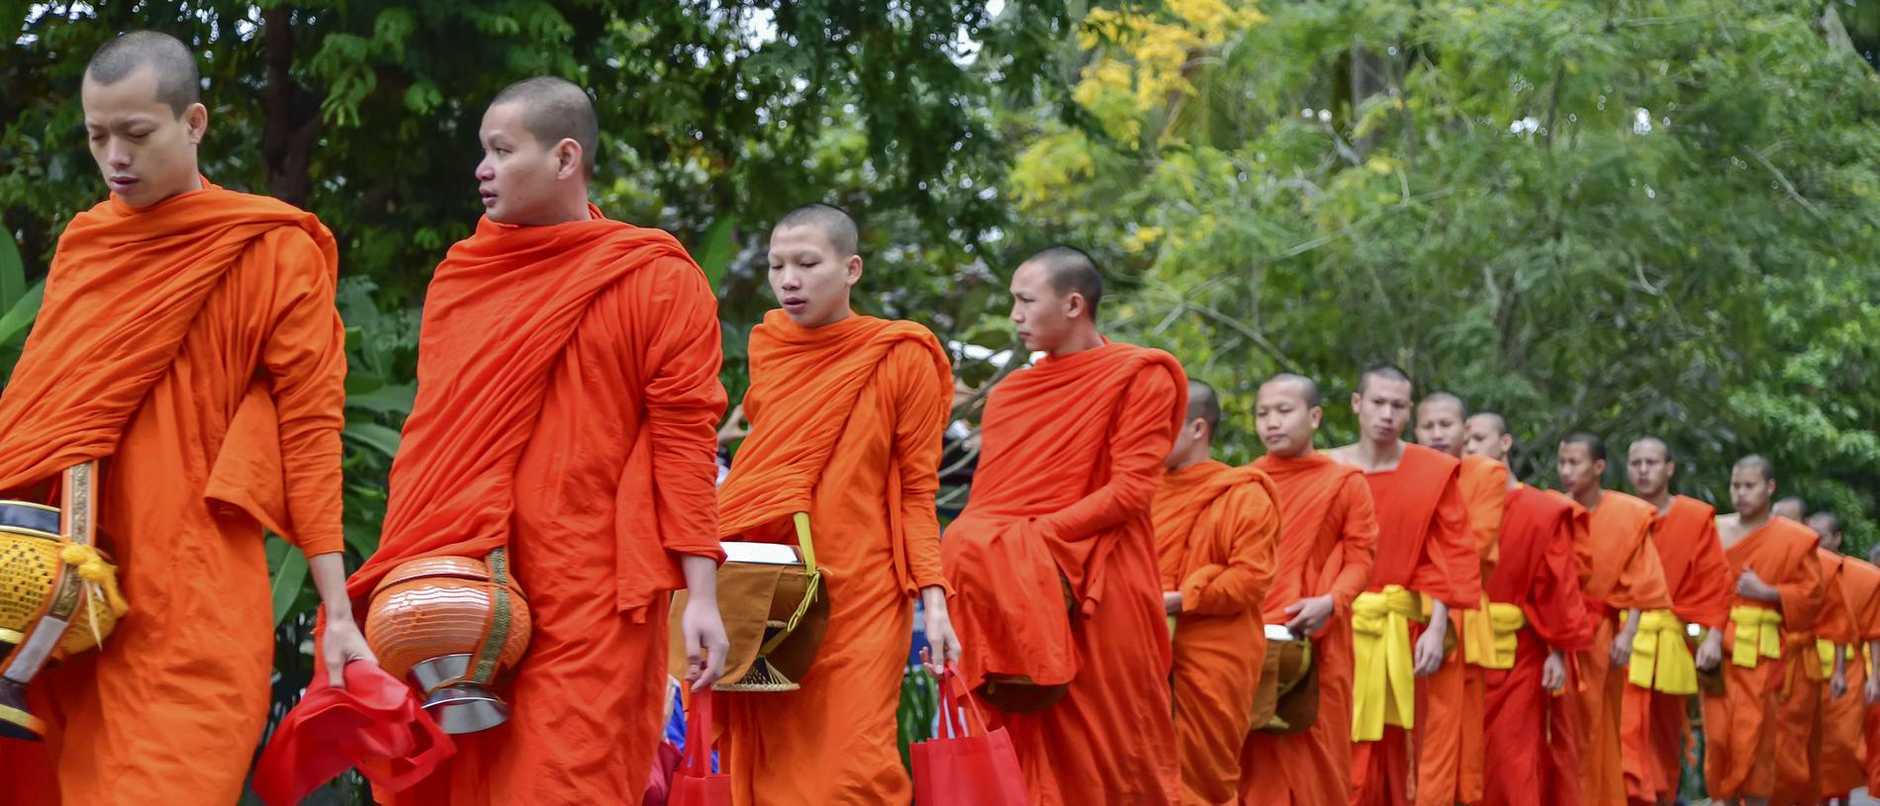 Salacious details about a Buddhist monk have emerged in a court court case over who should run a  temple.